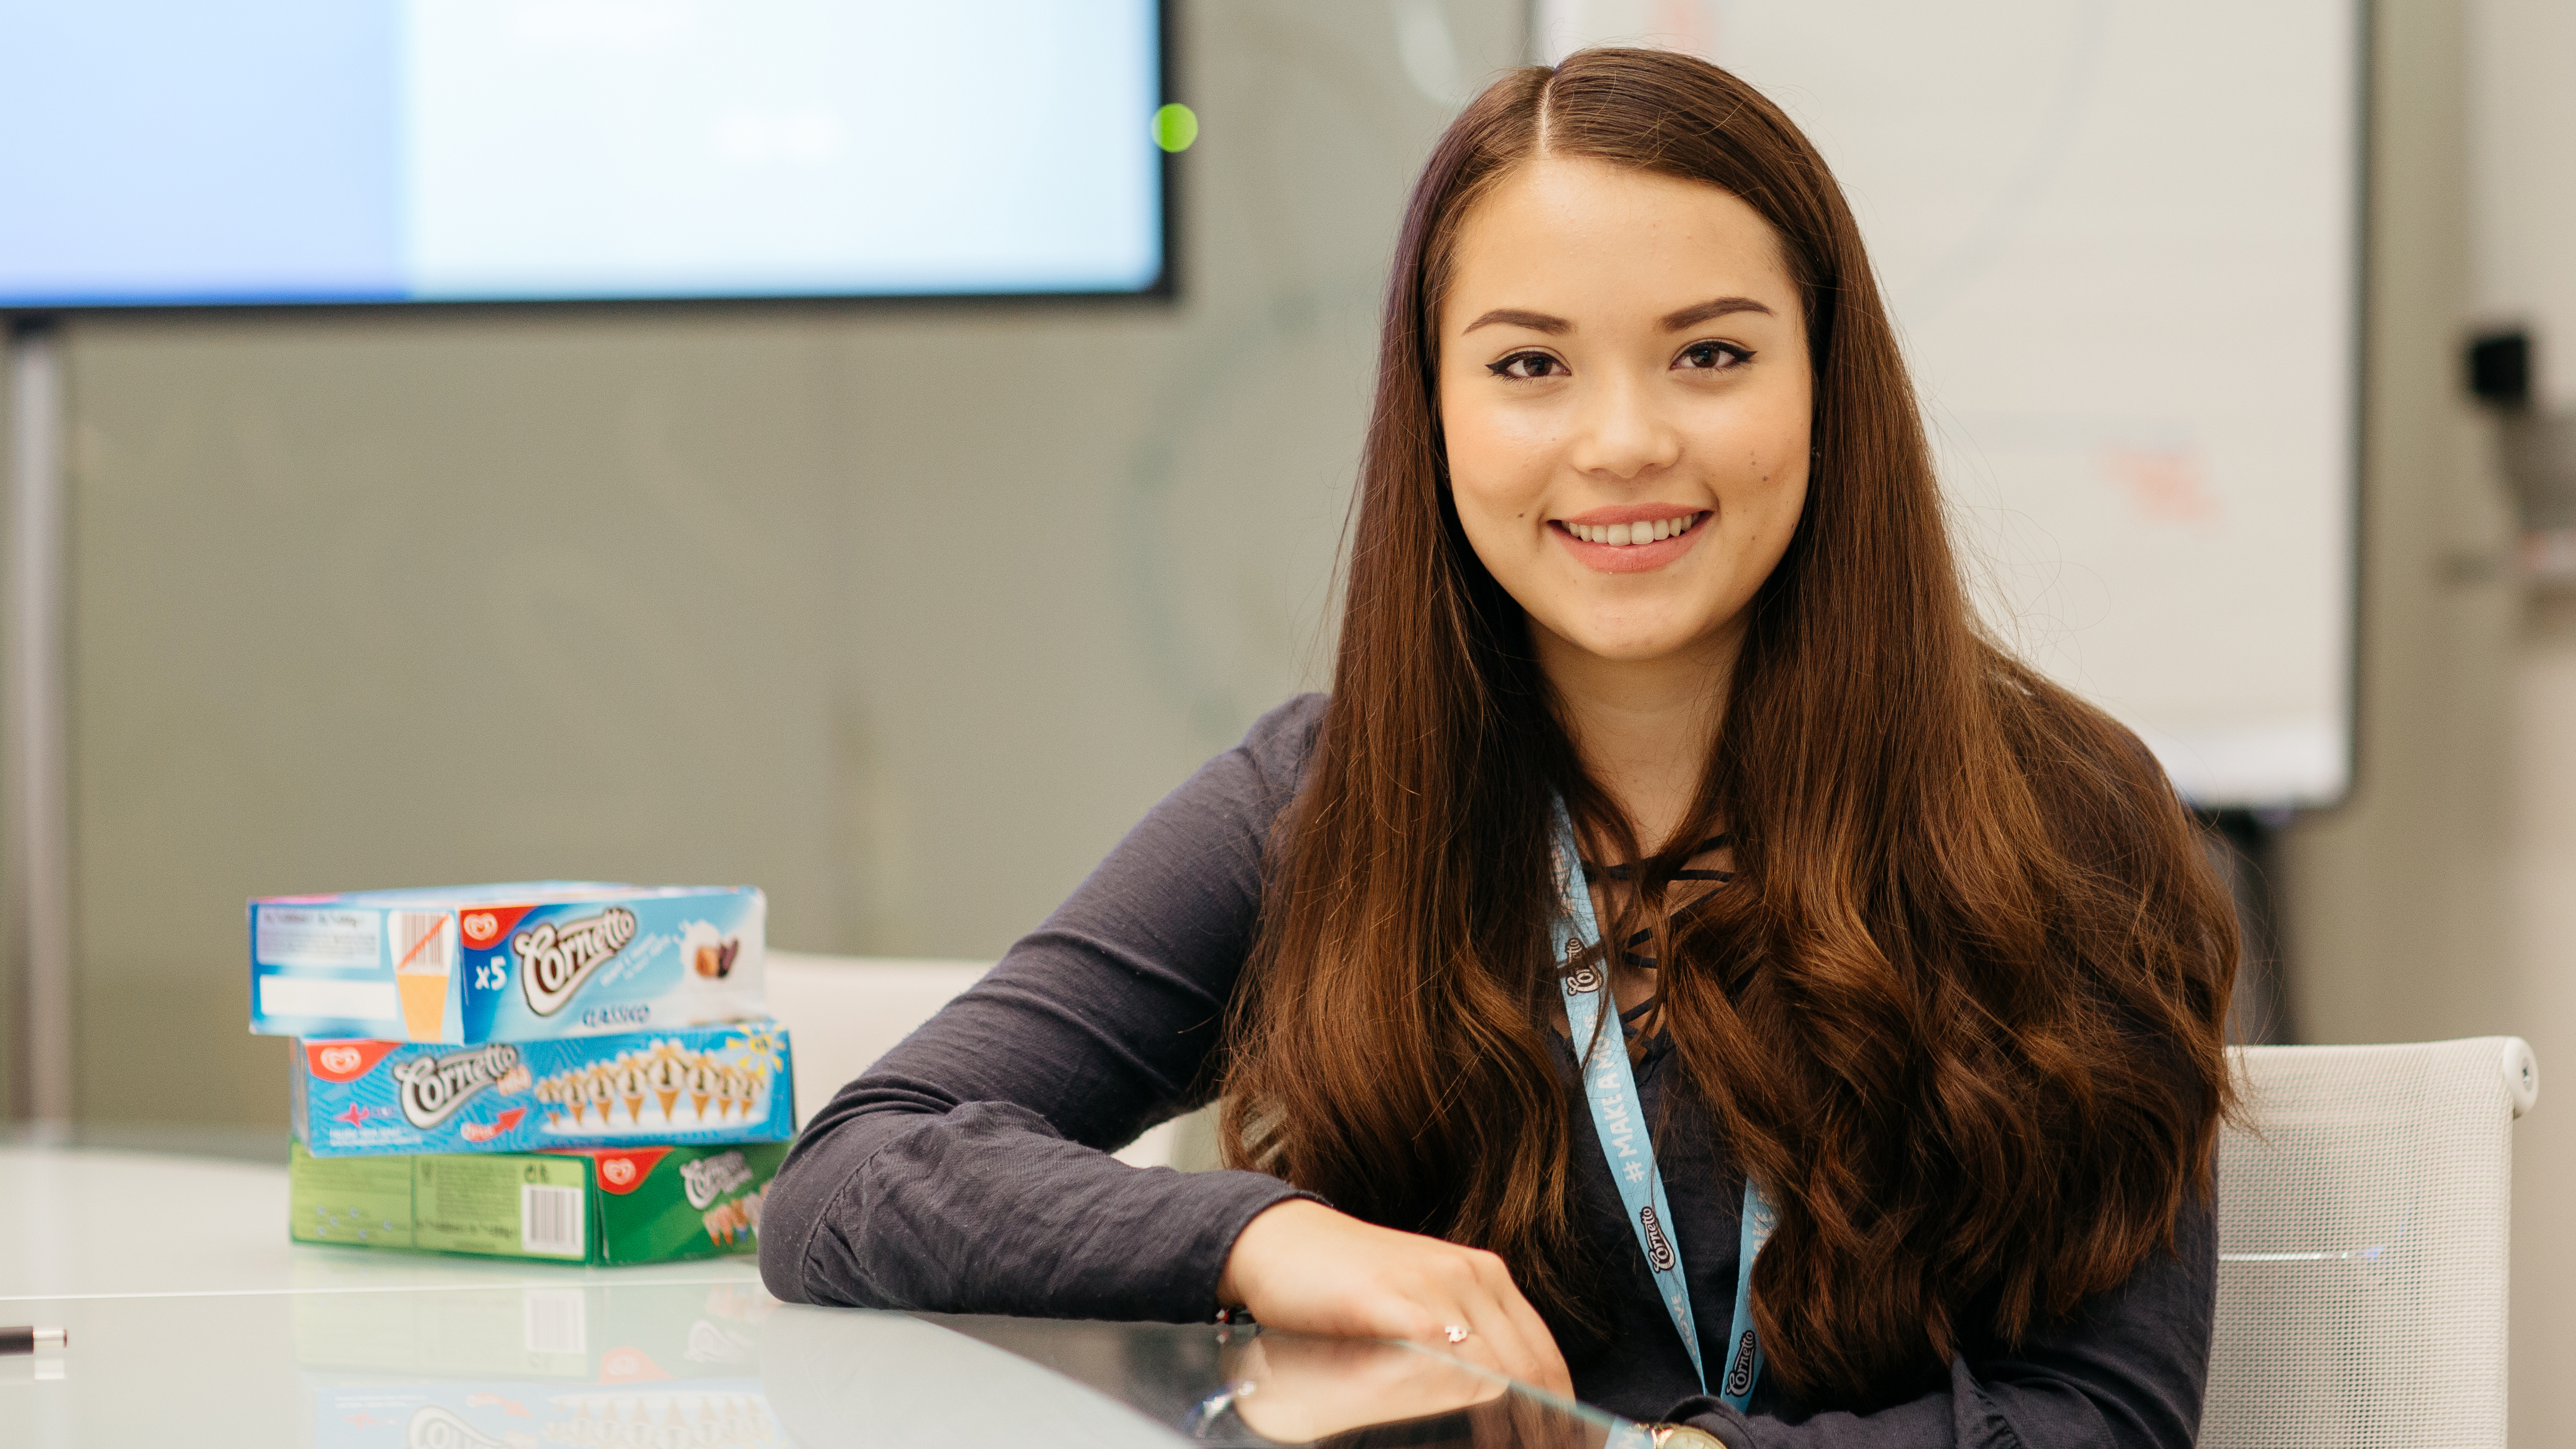 A young woman smiling towards the camera with some boxed food products next to her on a table.